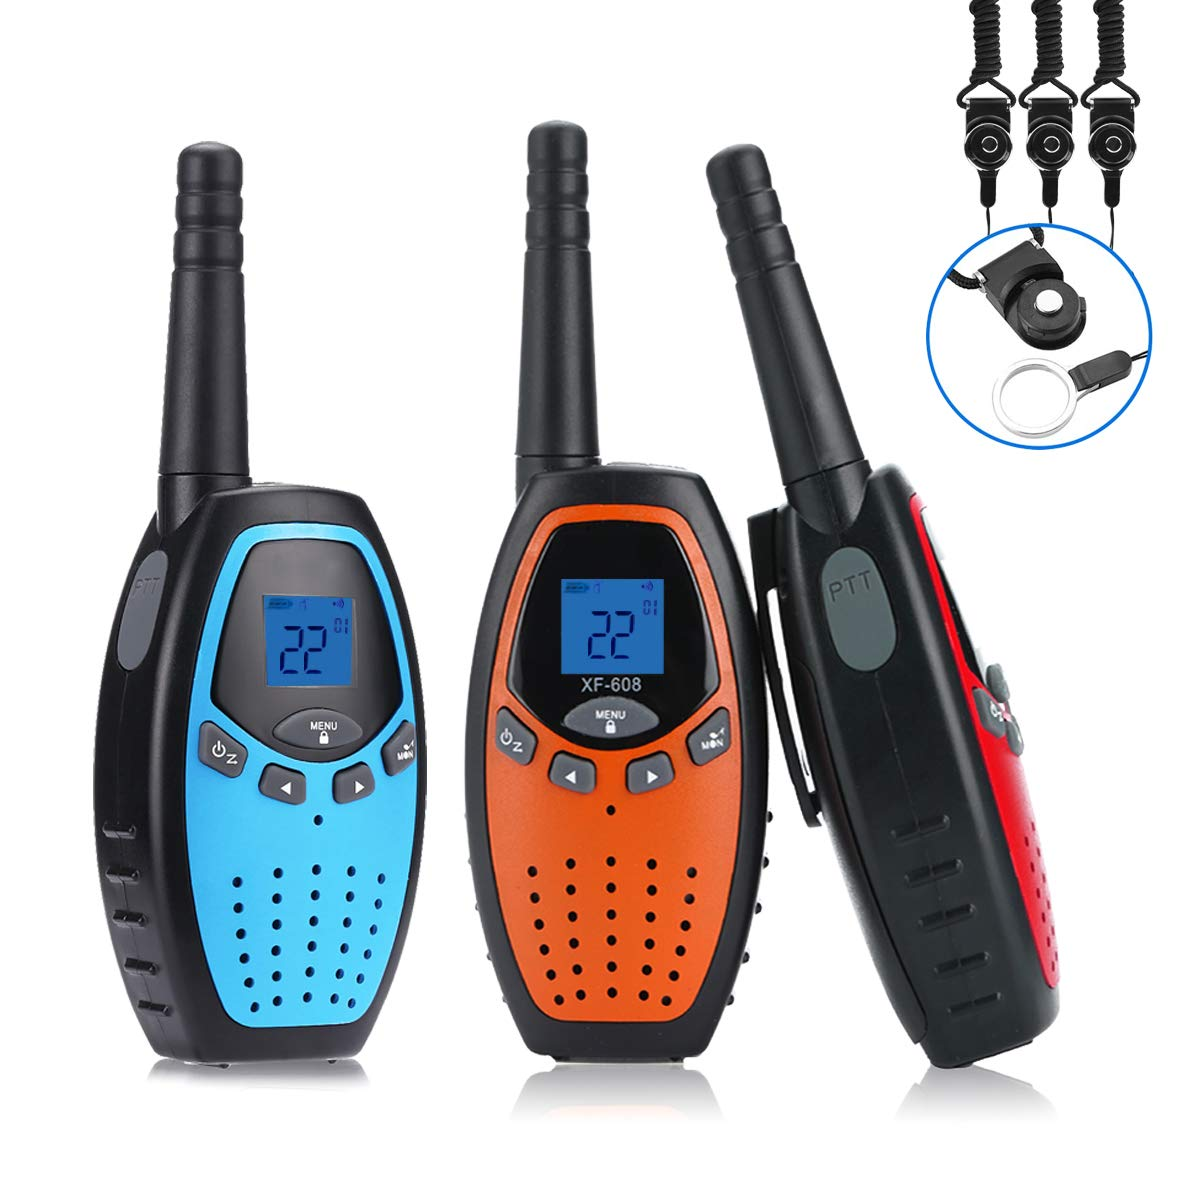 Fistone Walkie Talkies for Kids, 3 Packs 22 Channels 2 Way Radio Long Range Interphone Toys for Boy and Girls Age 3 6 7 8 9 12 Up for Outdoor Adventures Camping Hiking